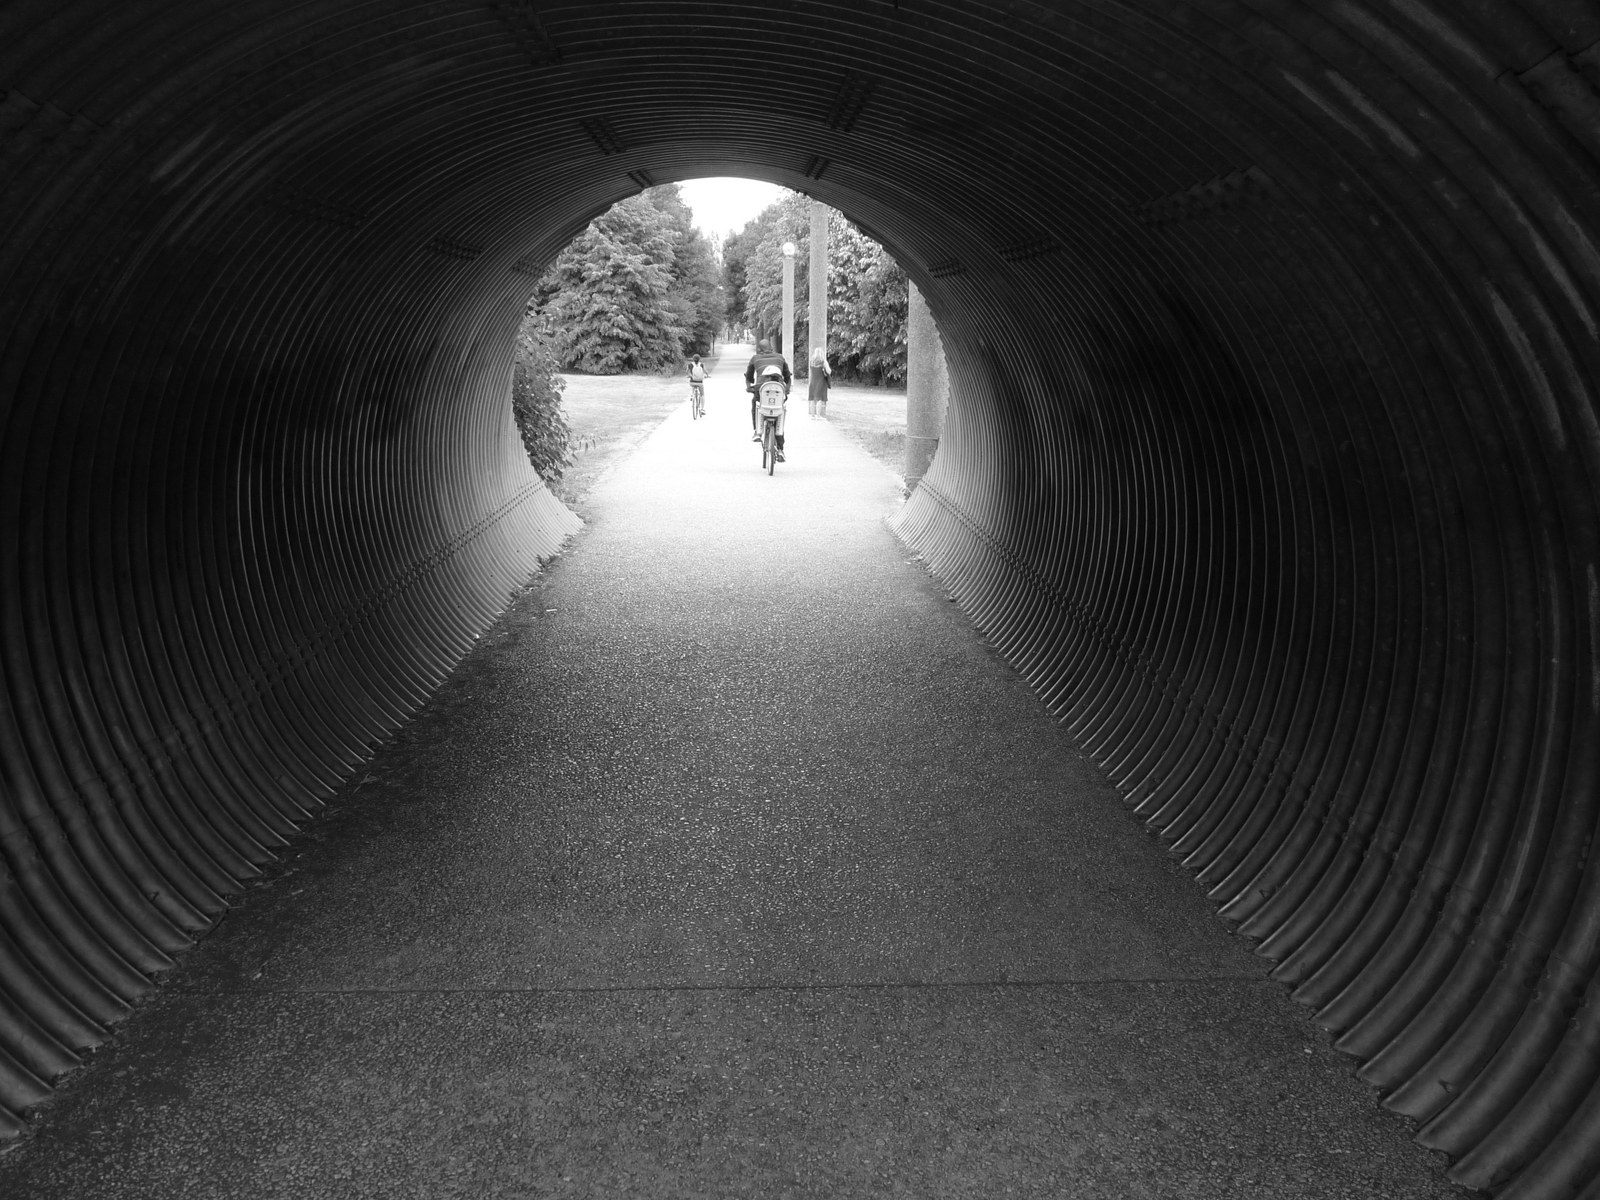 Le bout du tunnel - Photo - Constant JOSSE